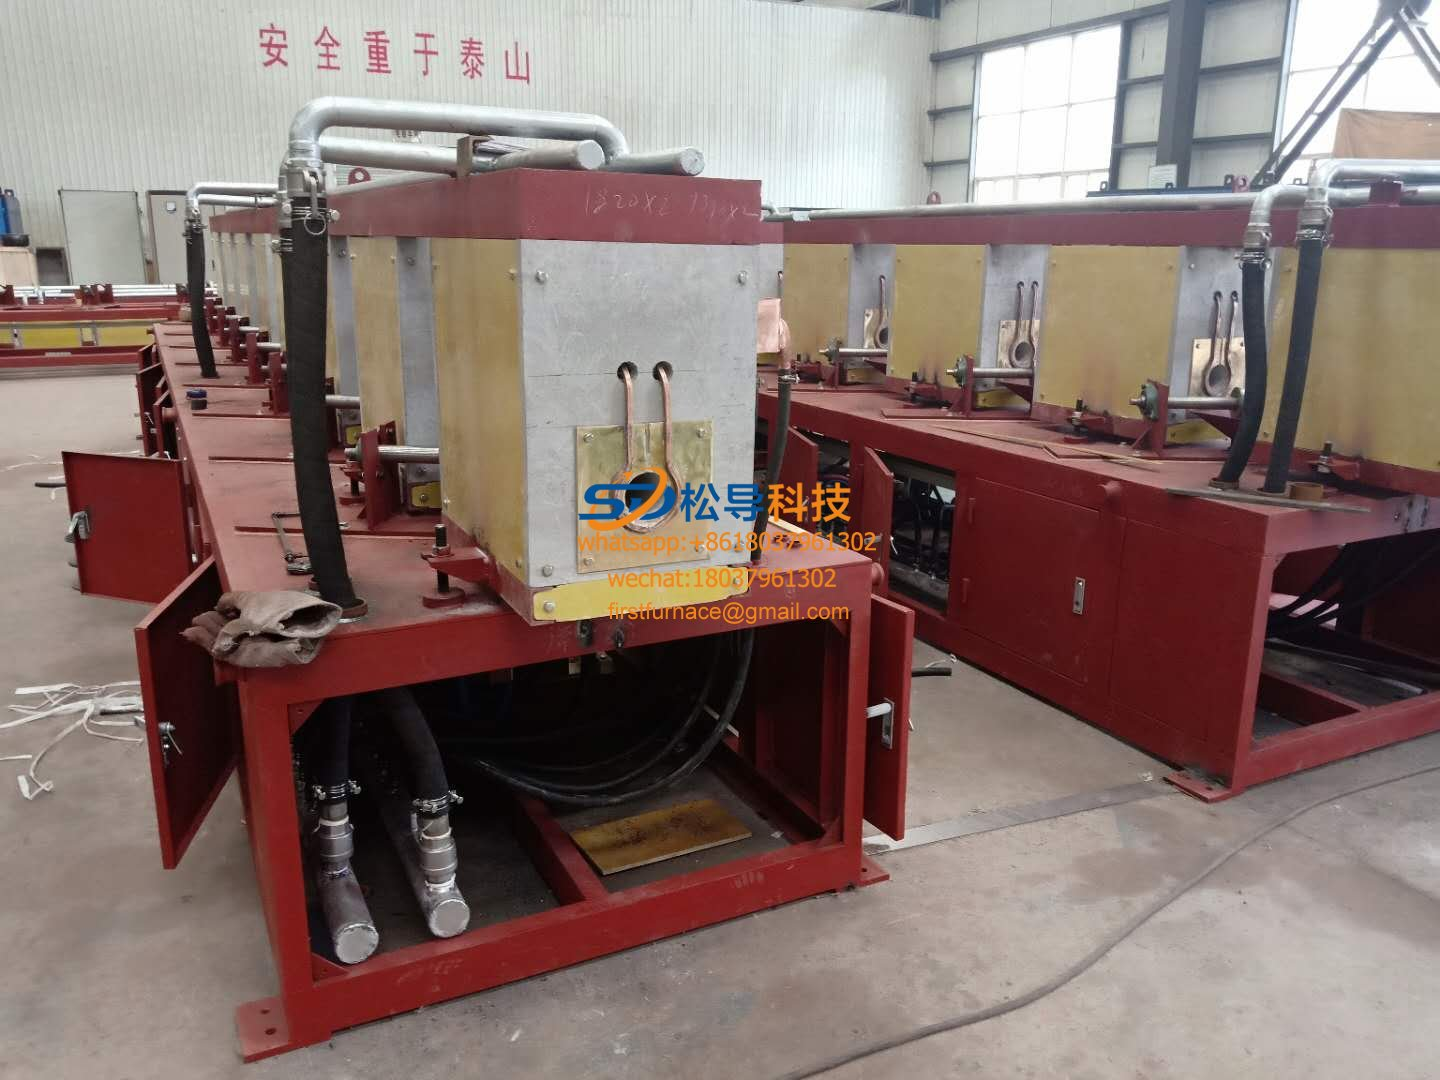 Copper tube medium frequency induction annealing furnace